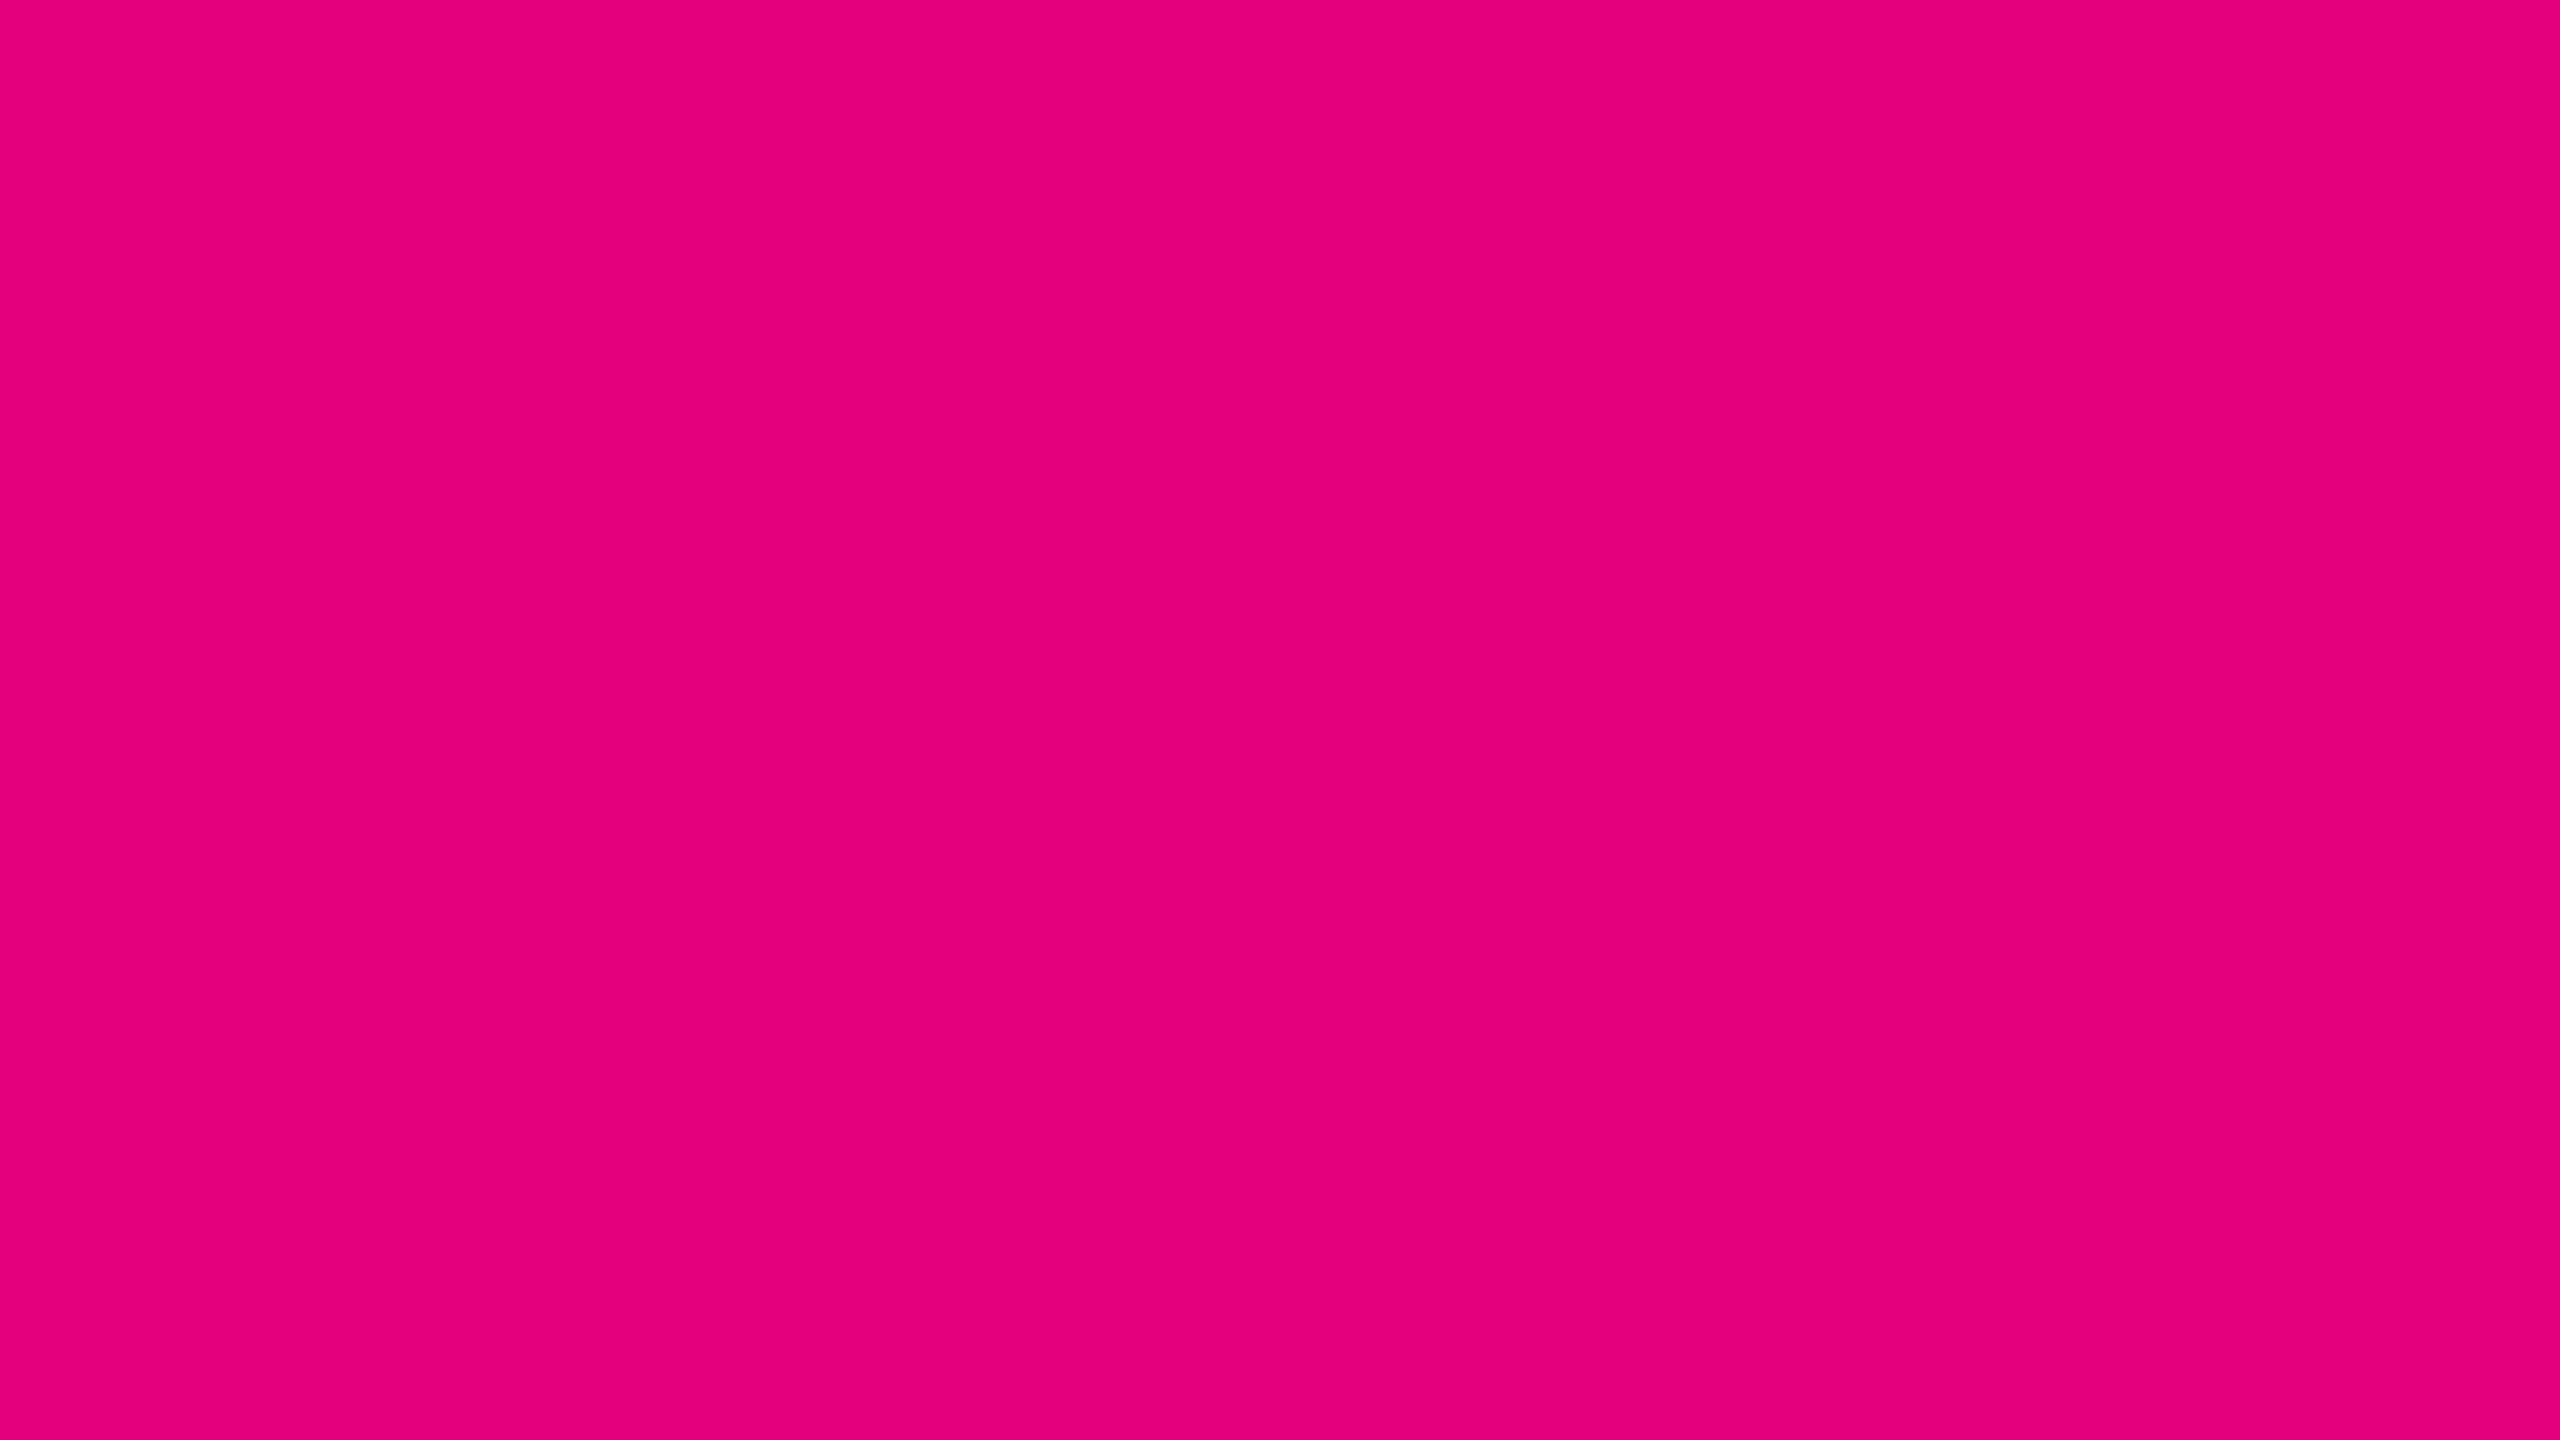 2560x1440 Mexican Pink Solid Color Background